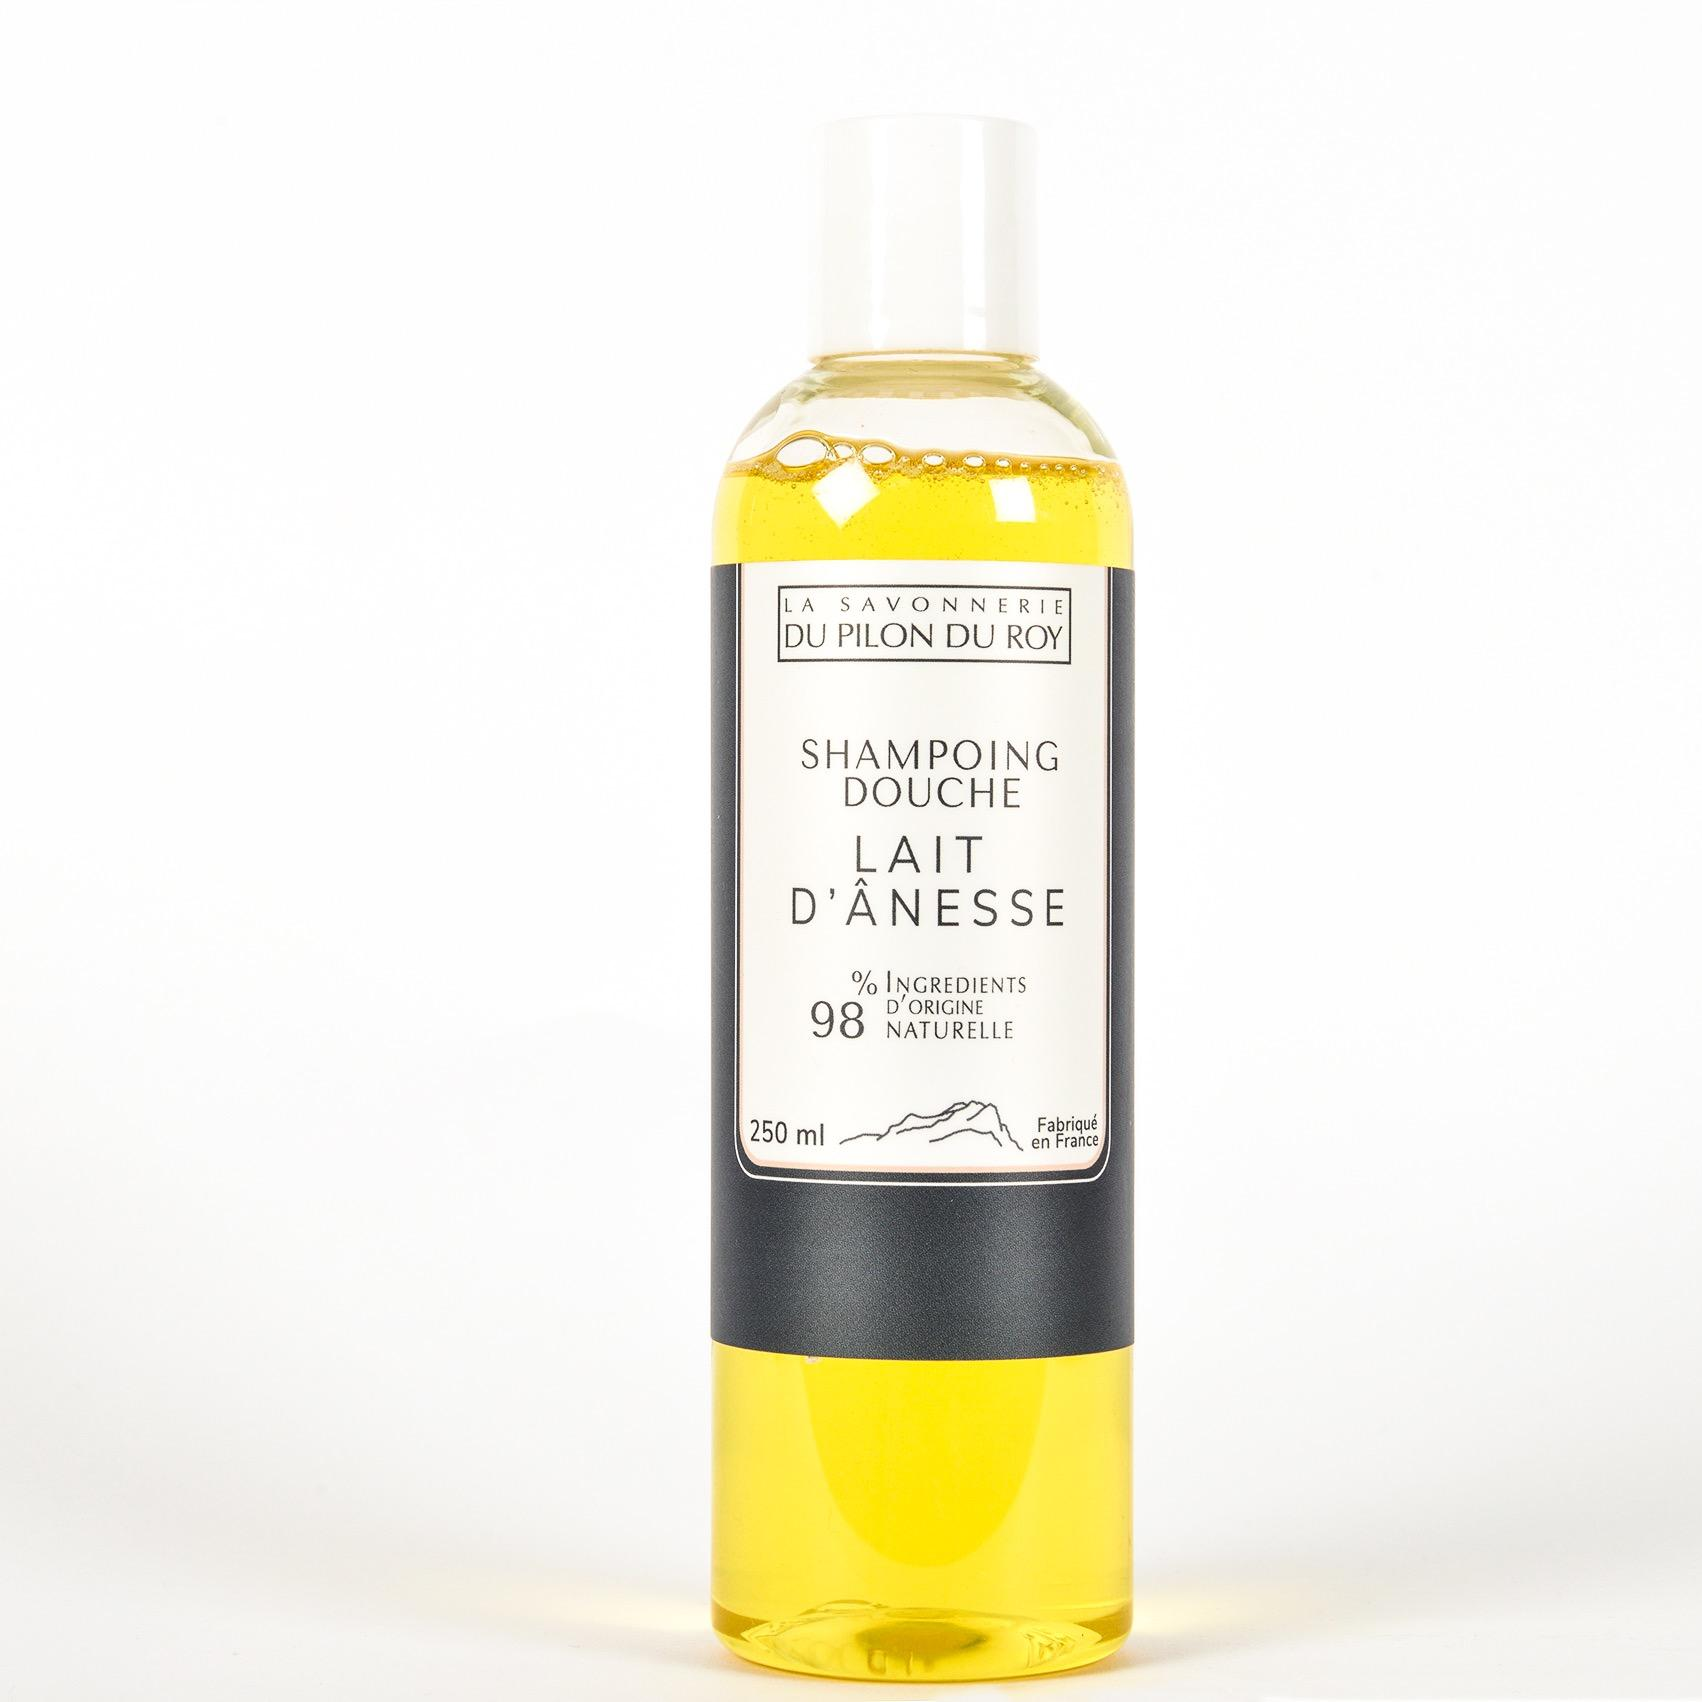 Shampooing douche lait anesse vanille caramel